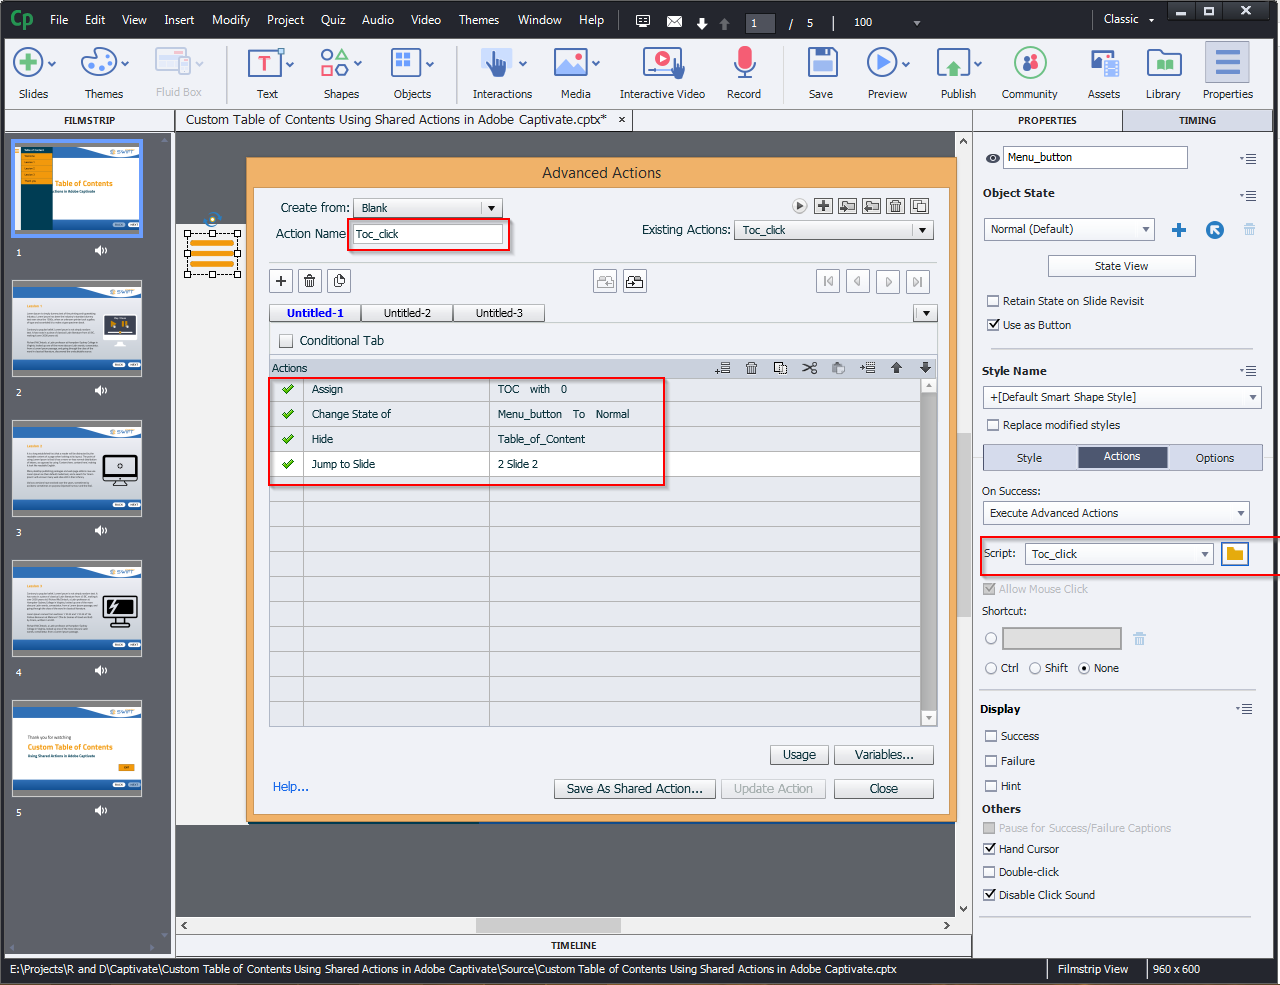 Contents Using Shared Actions in Adobe Captivate 2019 5